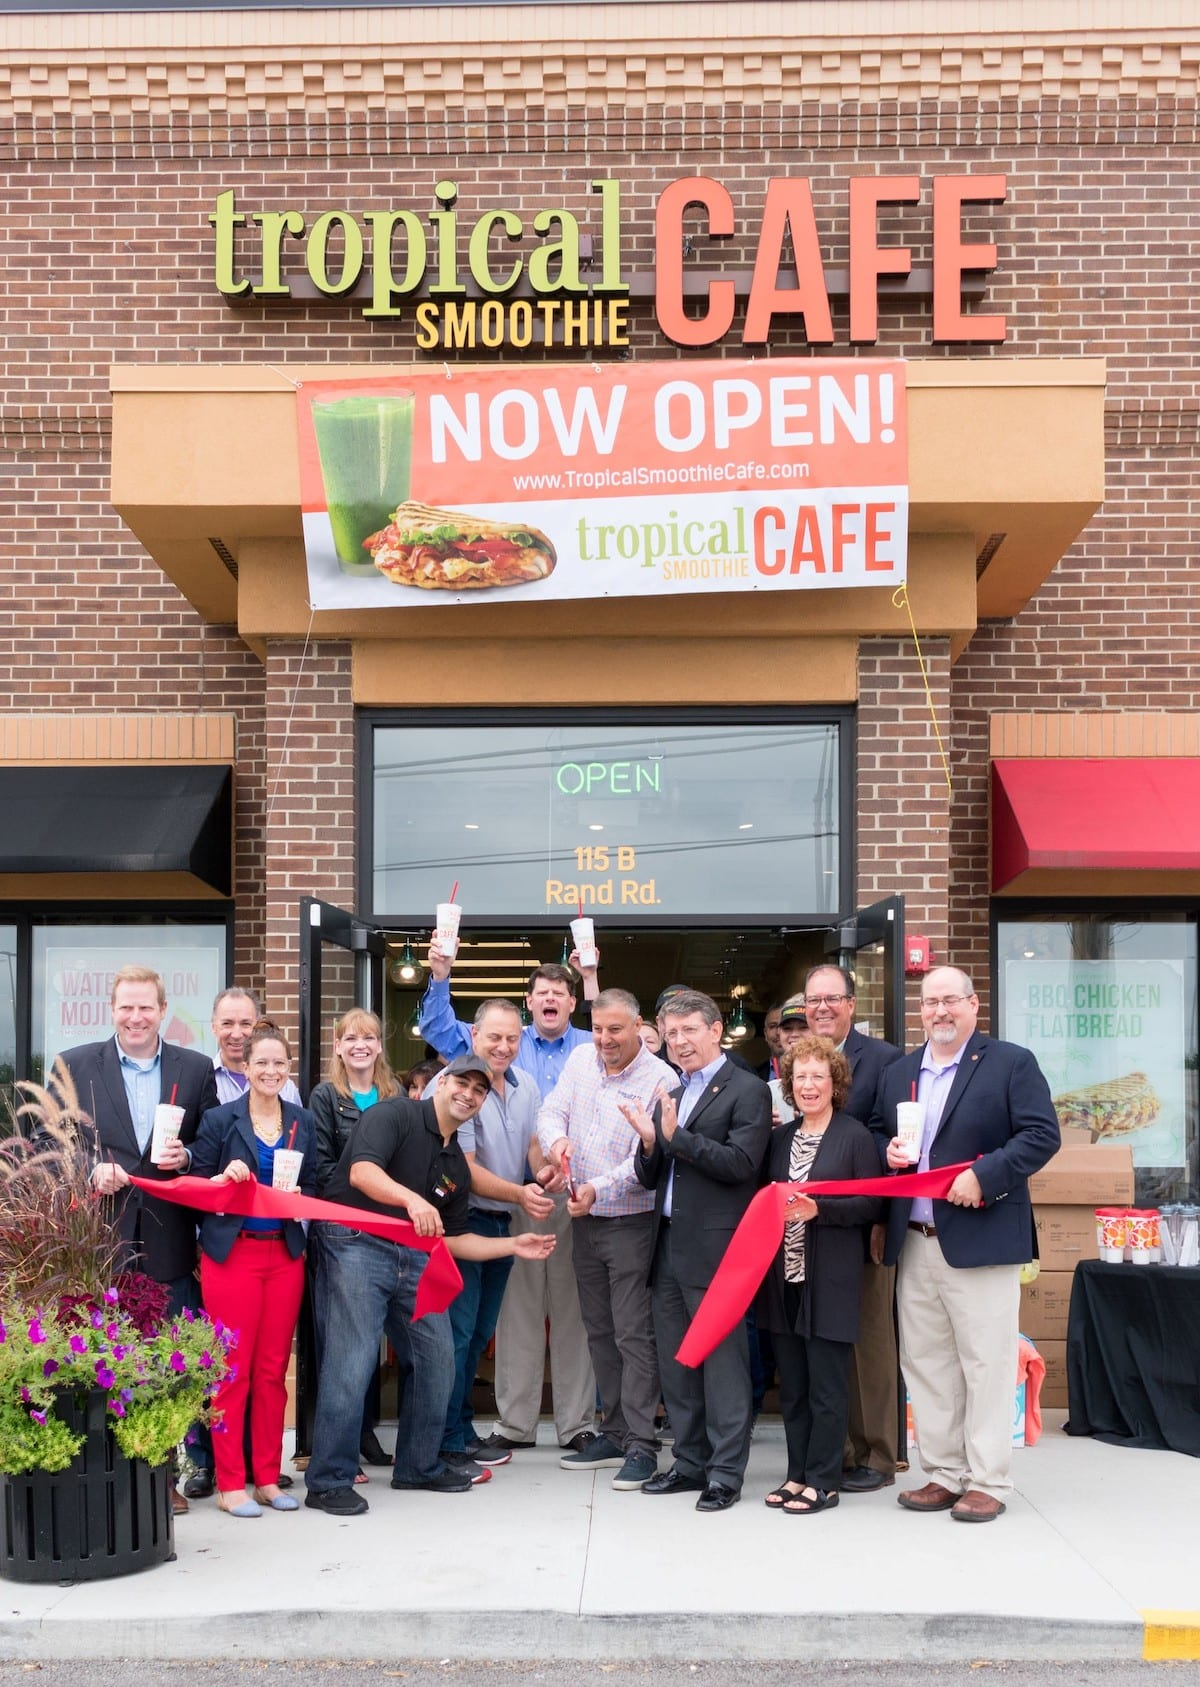 Tropical Smoothie Cafe 800th Grand opening ribbon cutting